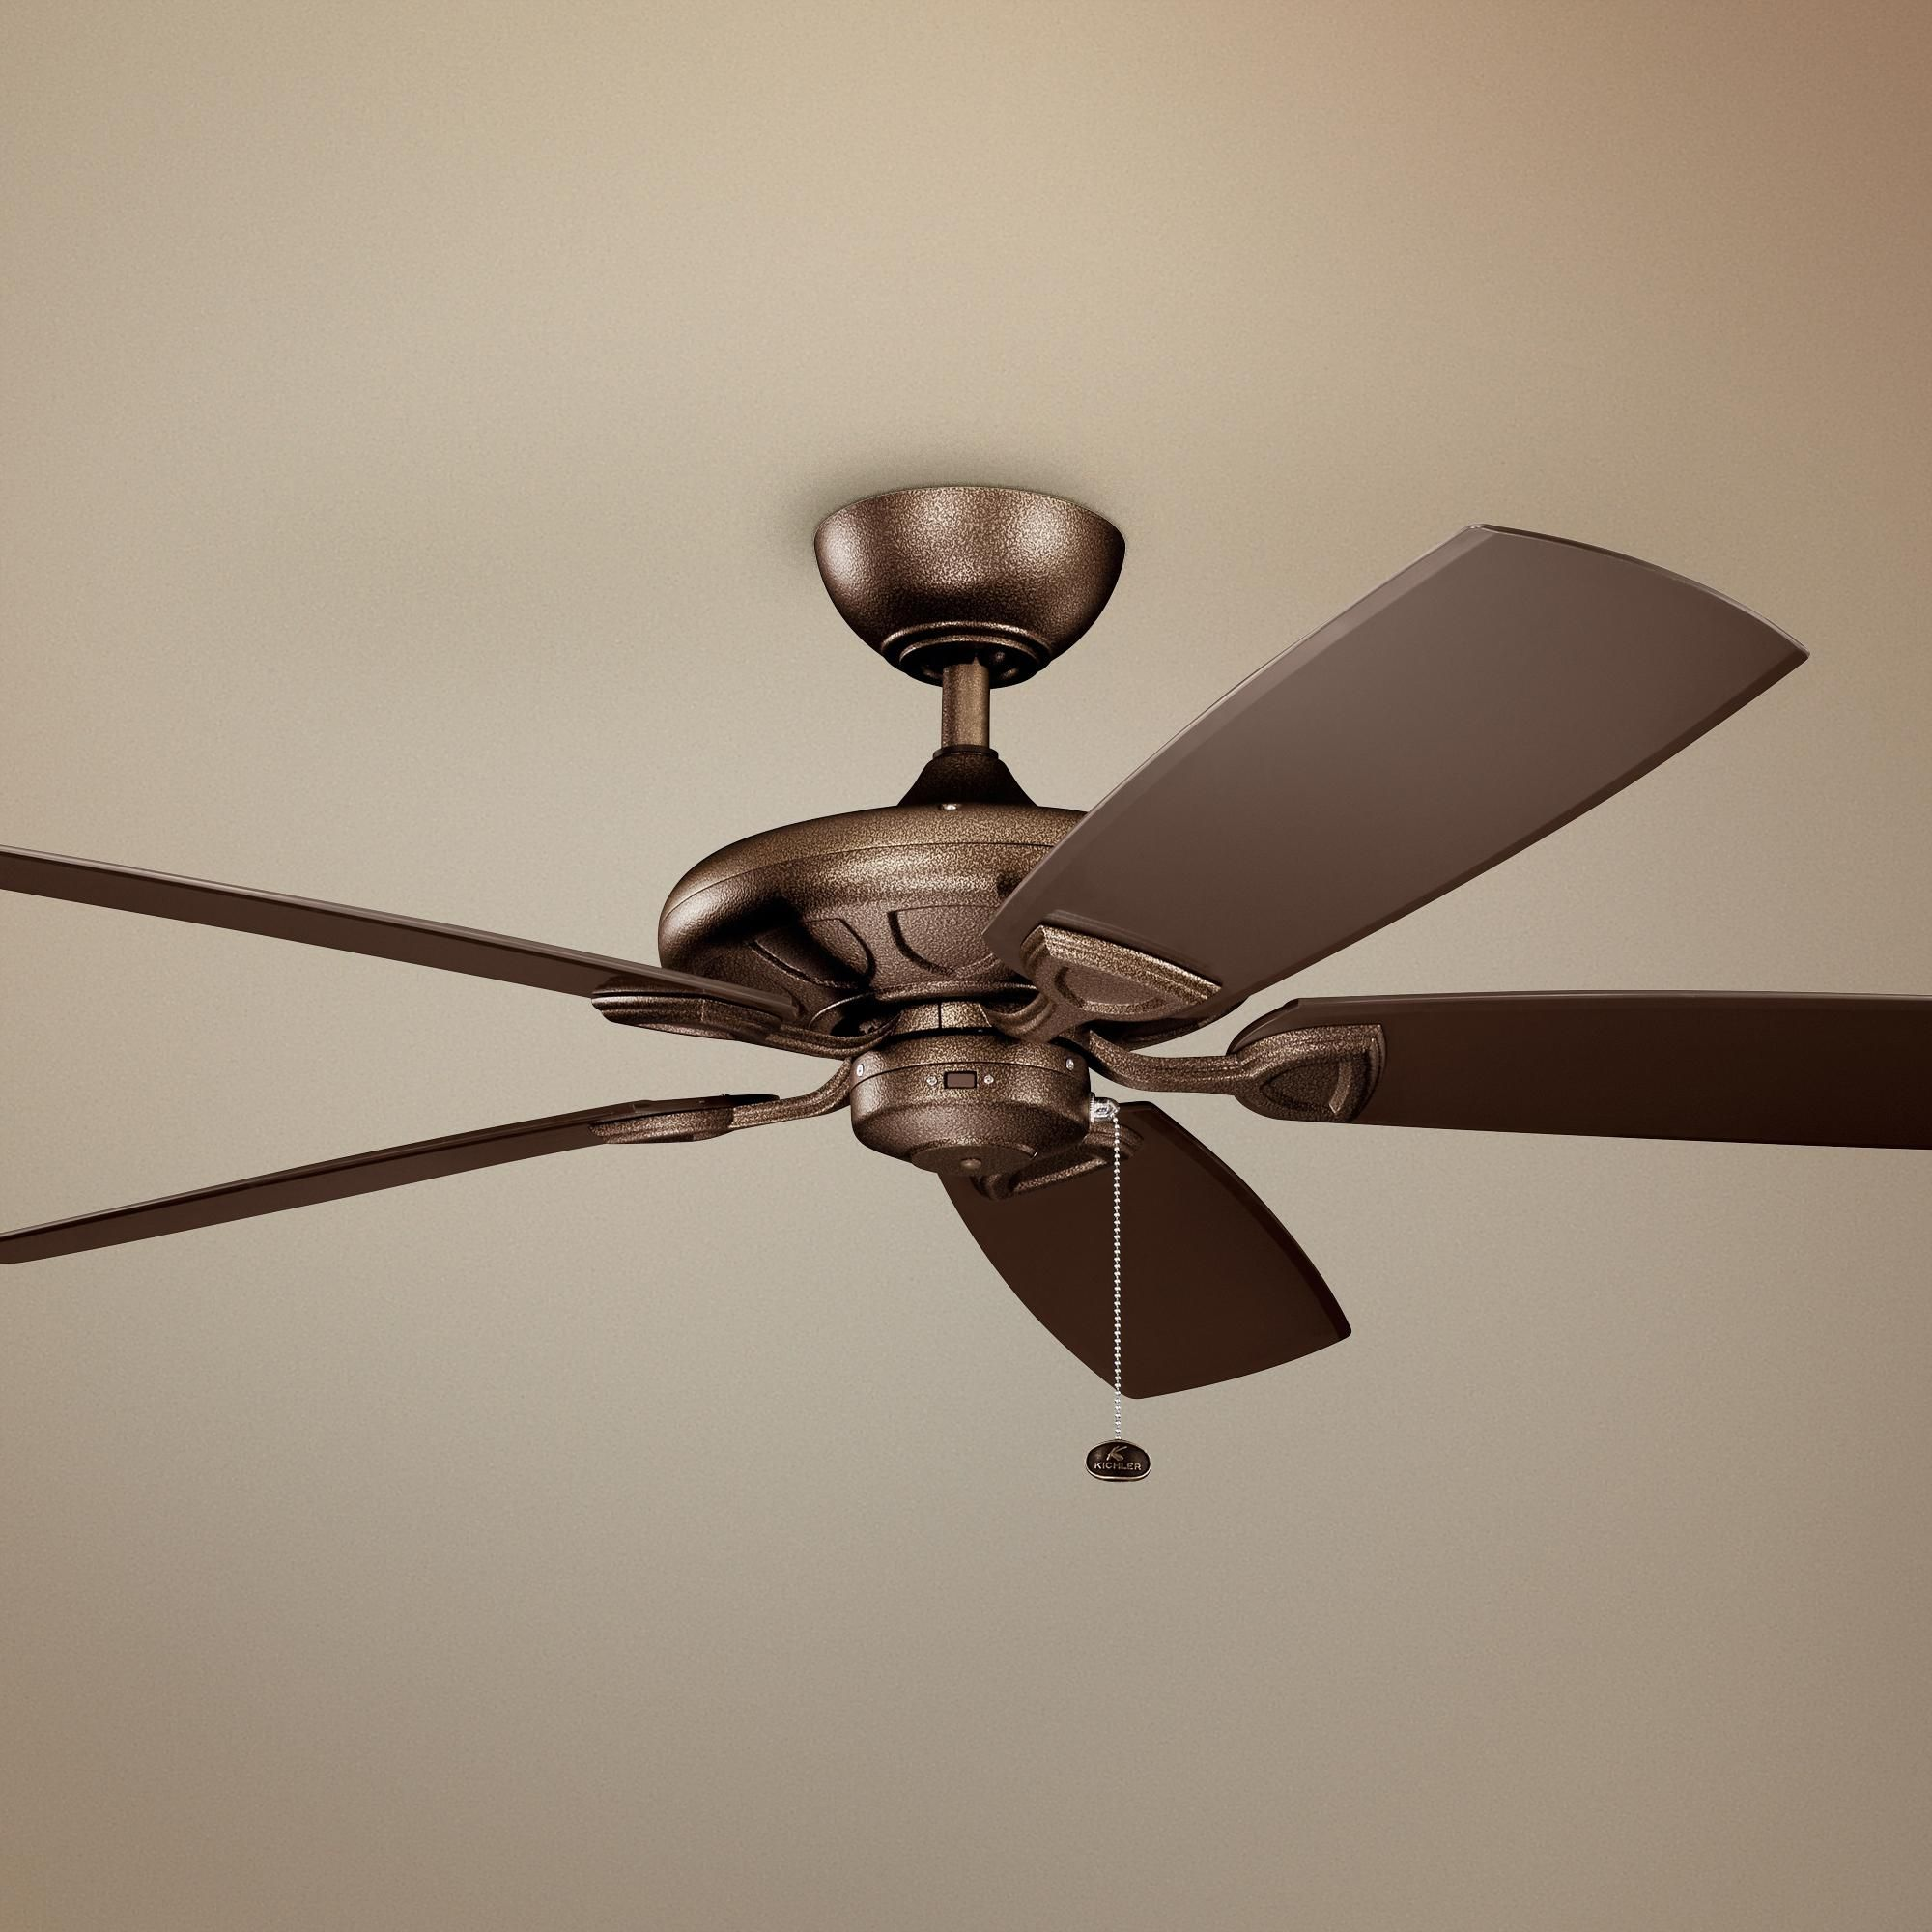 Ceiling Fans 60 Kichler Kevlar Climates Copper Outdoor Ceiling Fan In 2020 Outdoor Ceiling Fans Ceiling Fan Best Outdoor Ceiling Fans